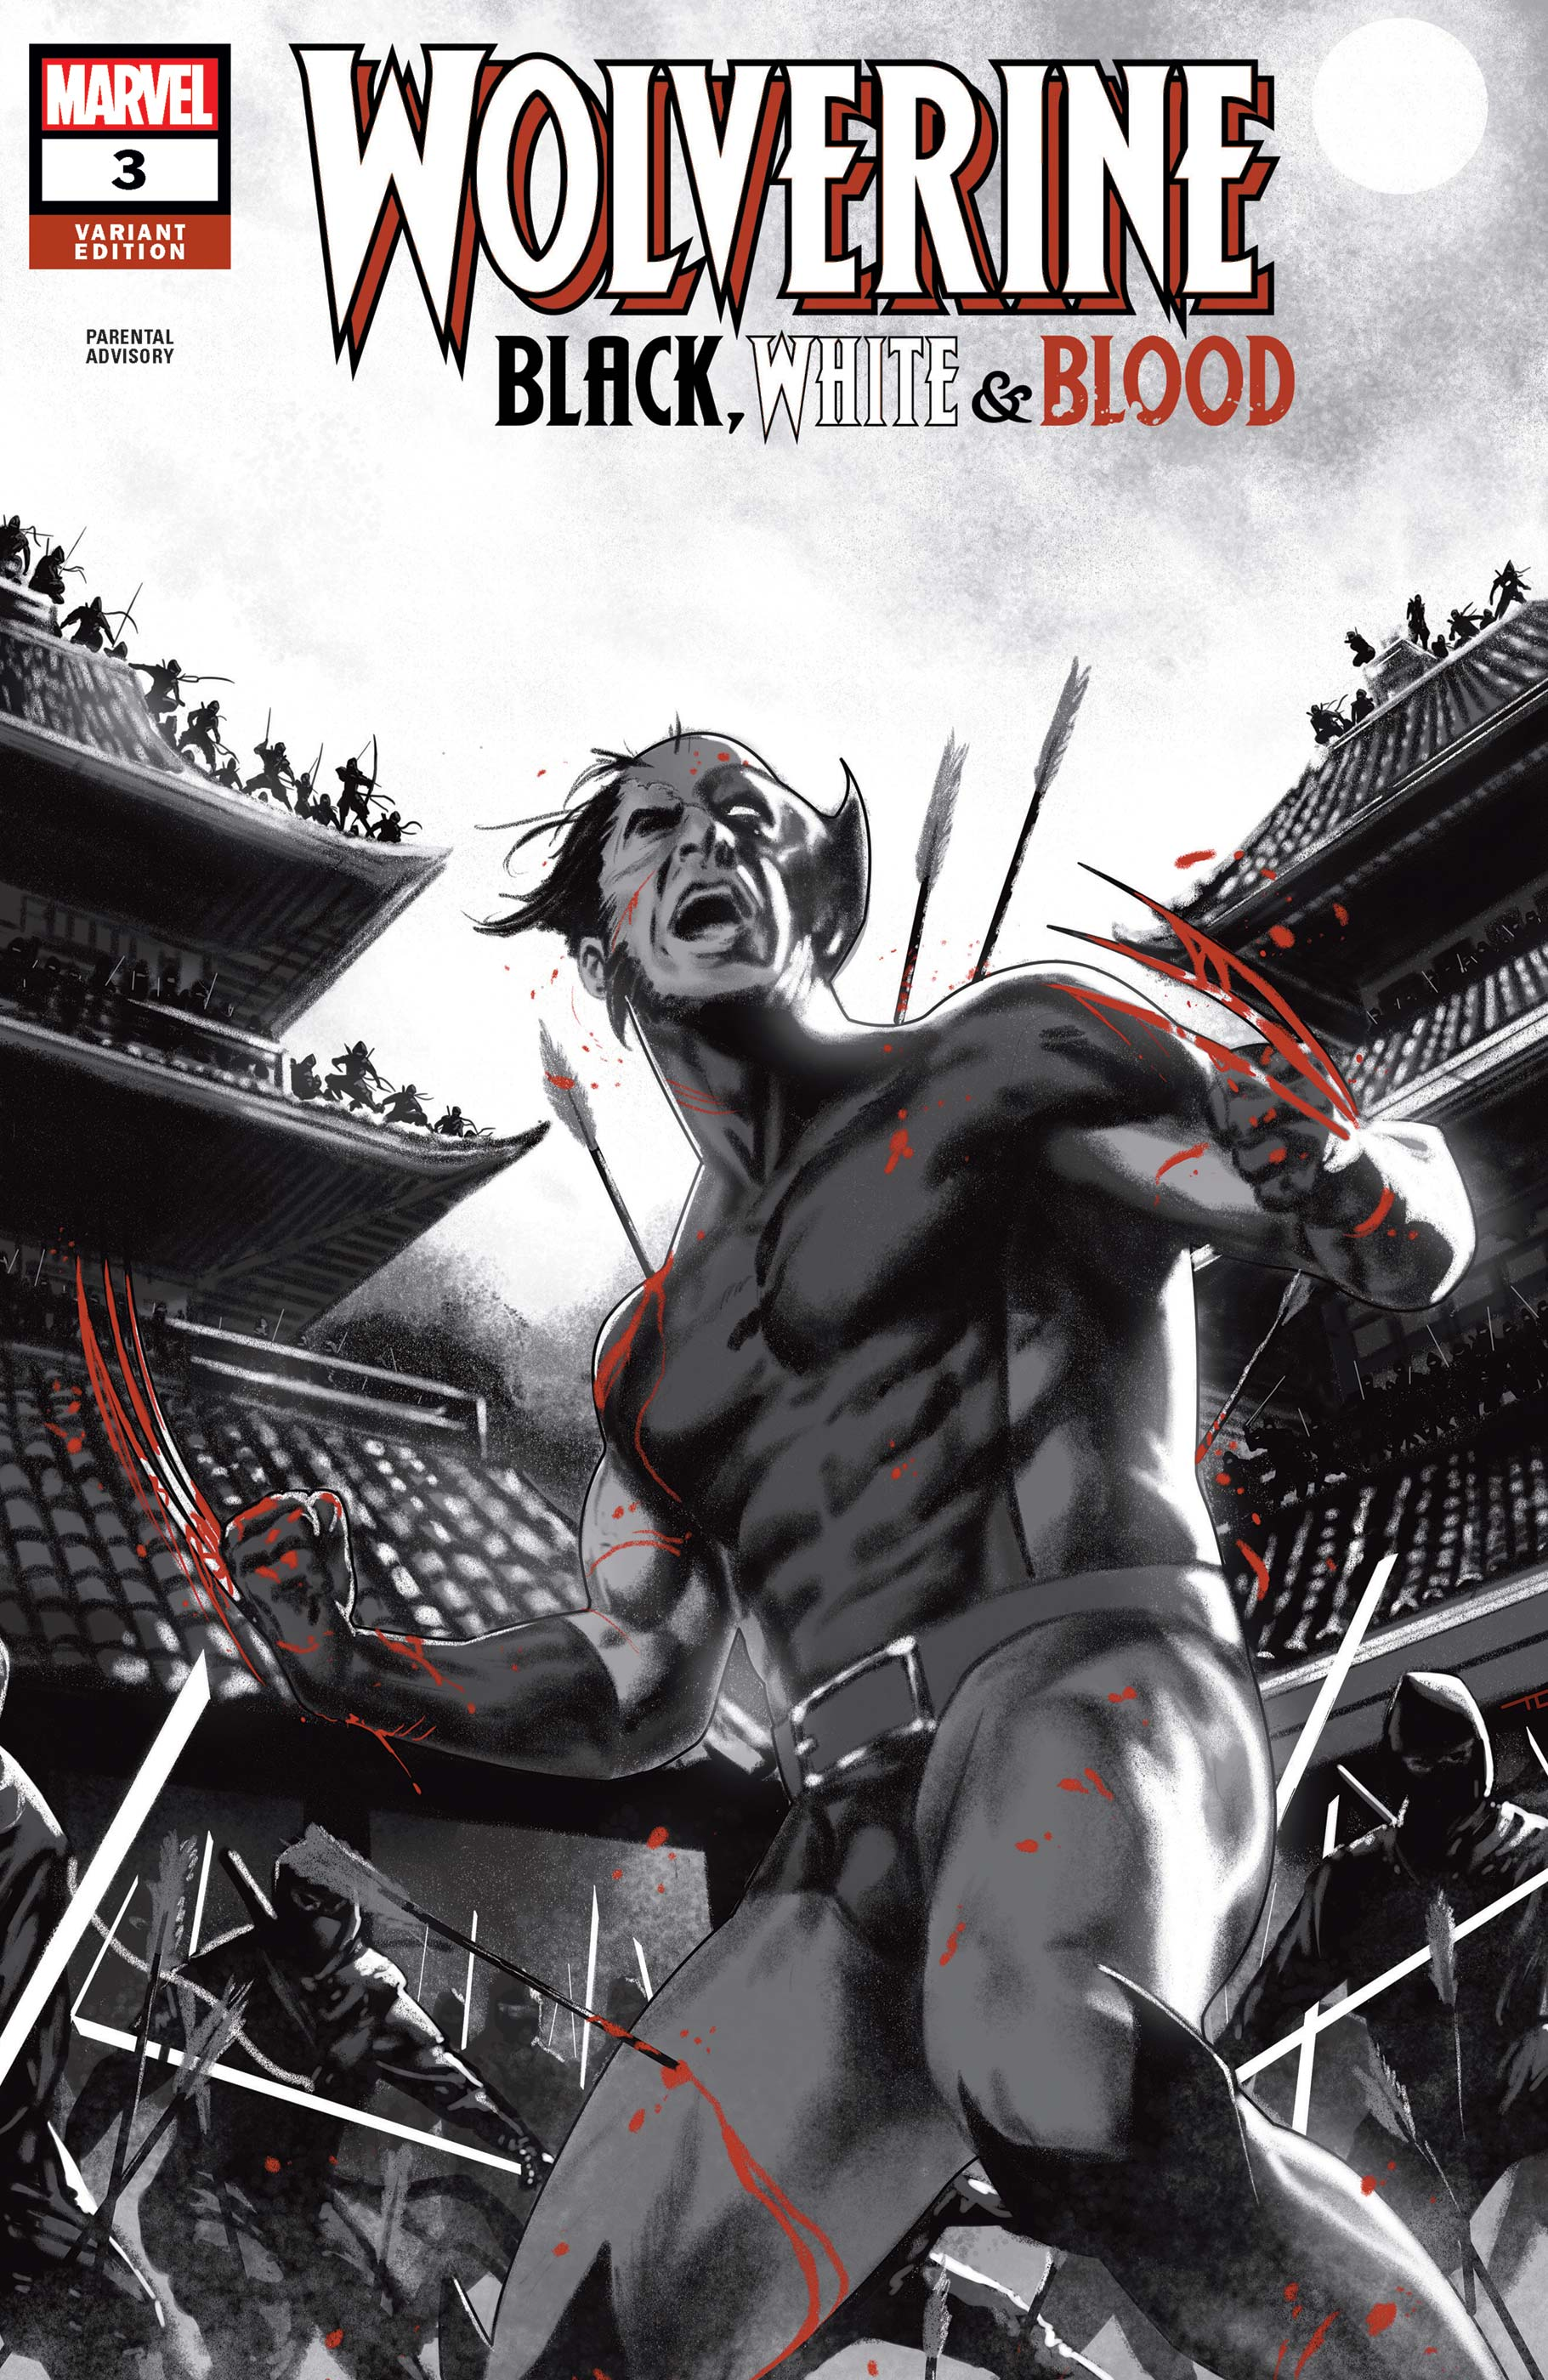 Wolverine: Black, White & Blood #3 Variant Cover by Taurin Clarke